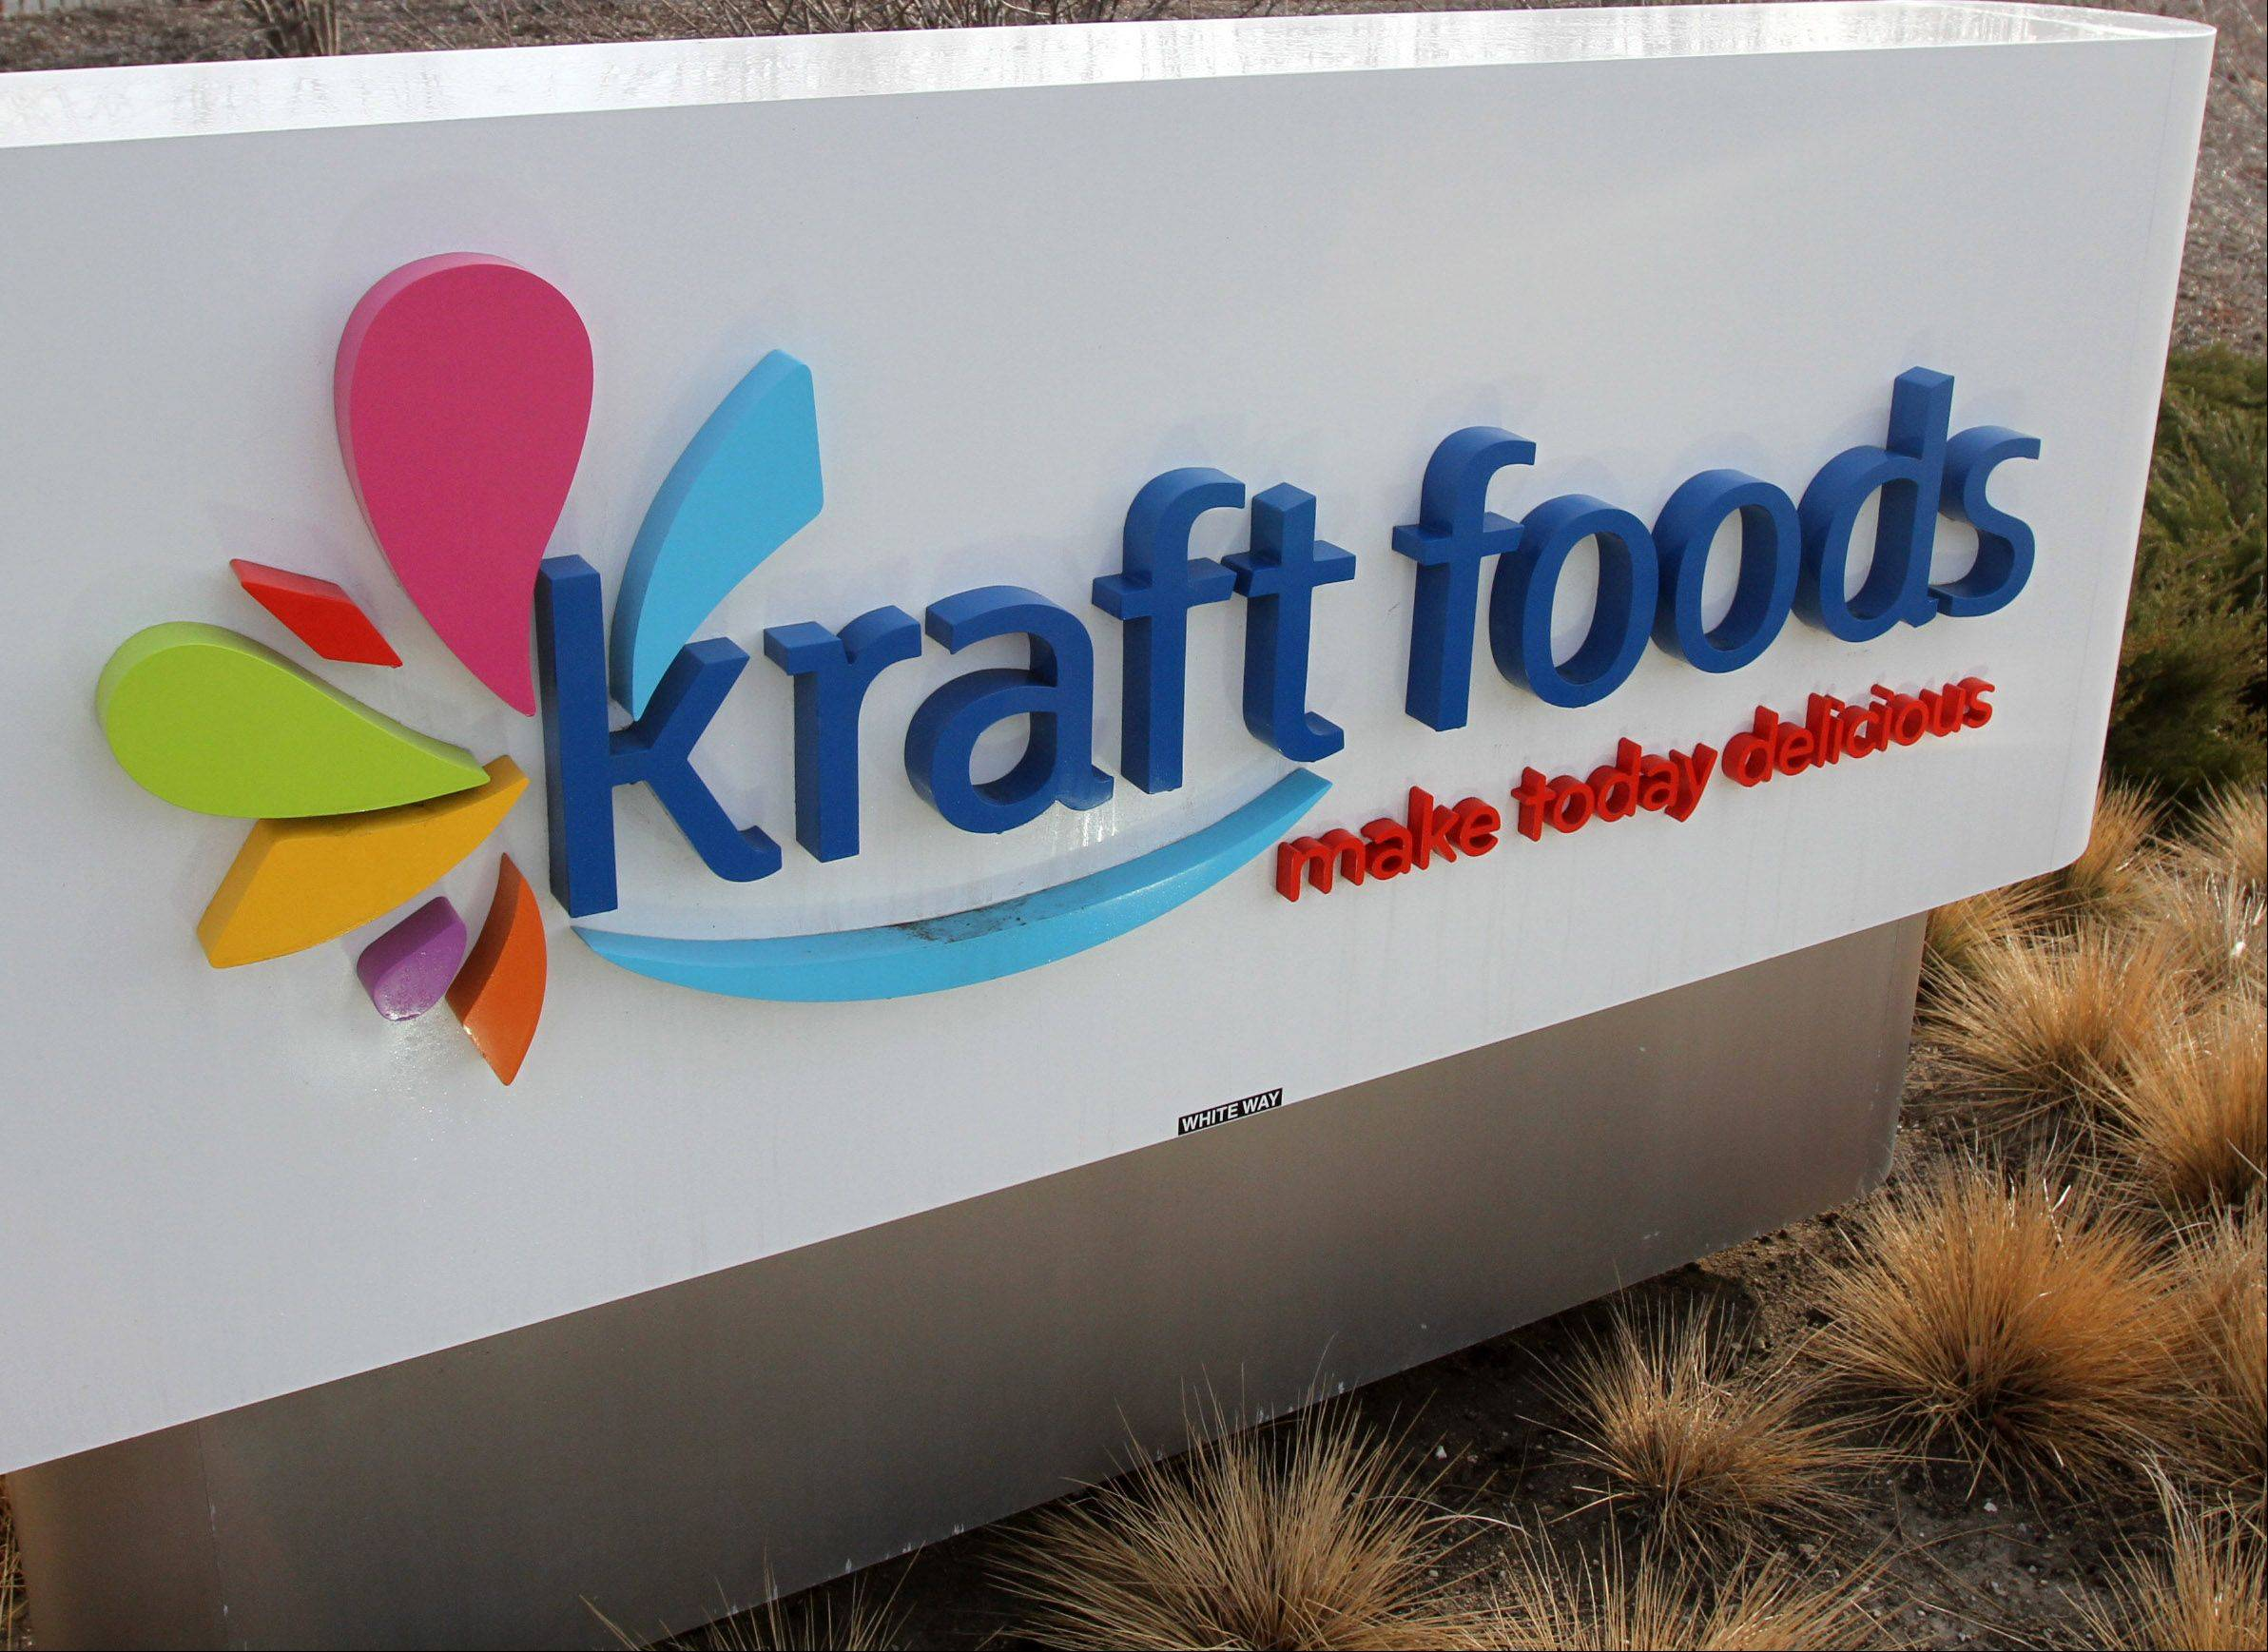 Northfield-based Kraft Foods Group Inc. is boosting its quarterly dividend by 5 percent to 52.5 cents per share from 50 cents.